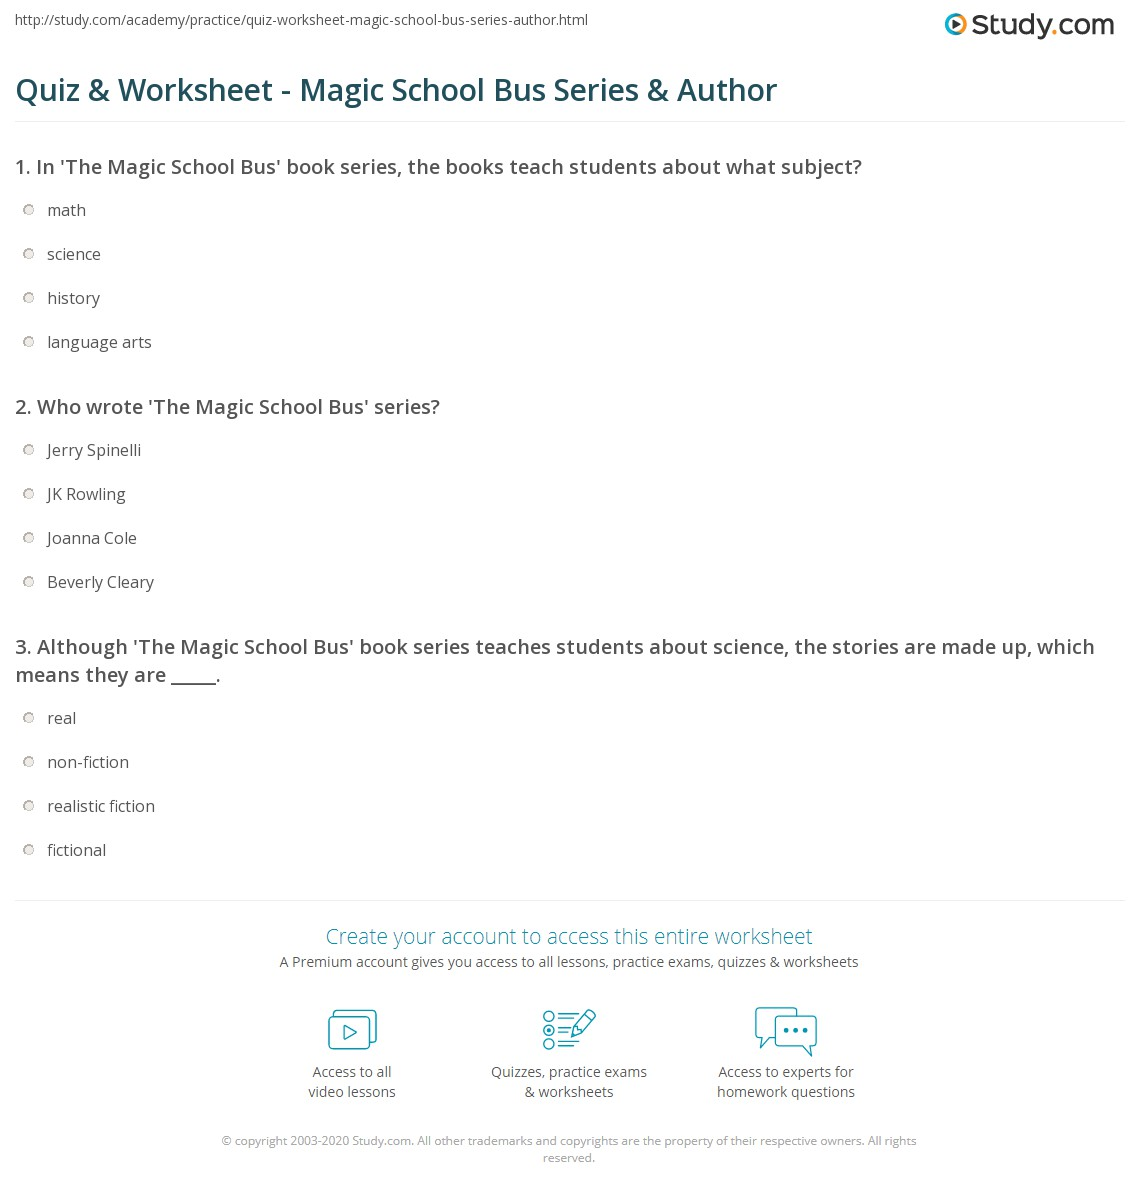 Free Worksheet Magic School Bus Worksheets quiz worksheet magic school bus series author study com print the book worksheet